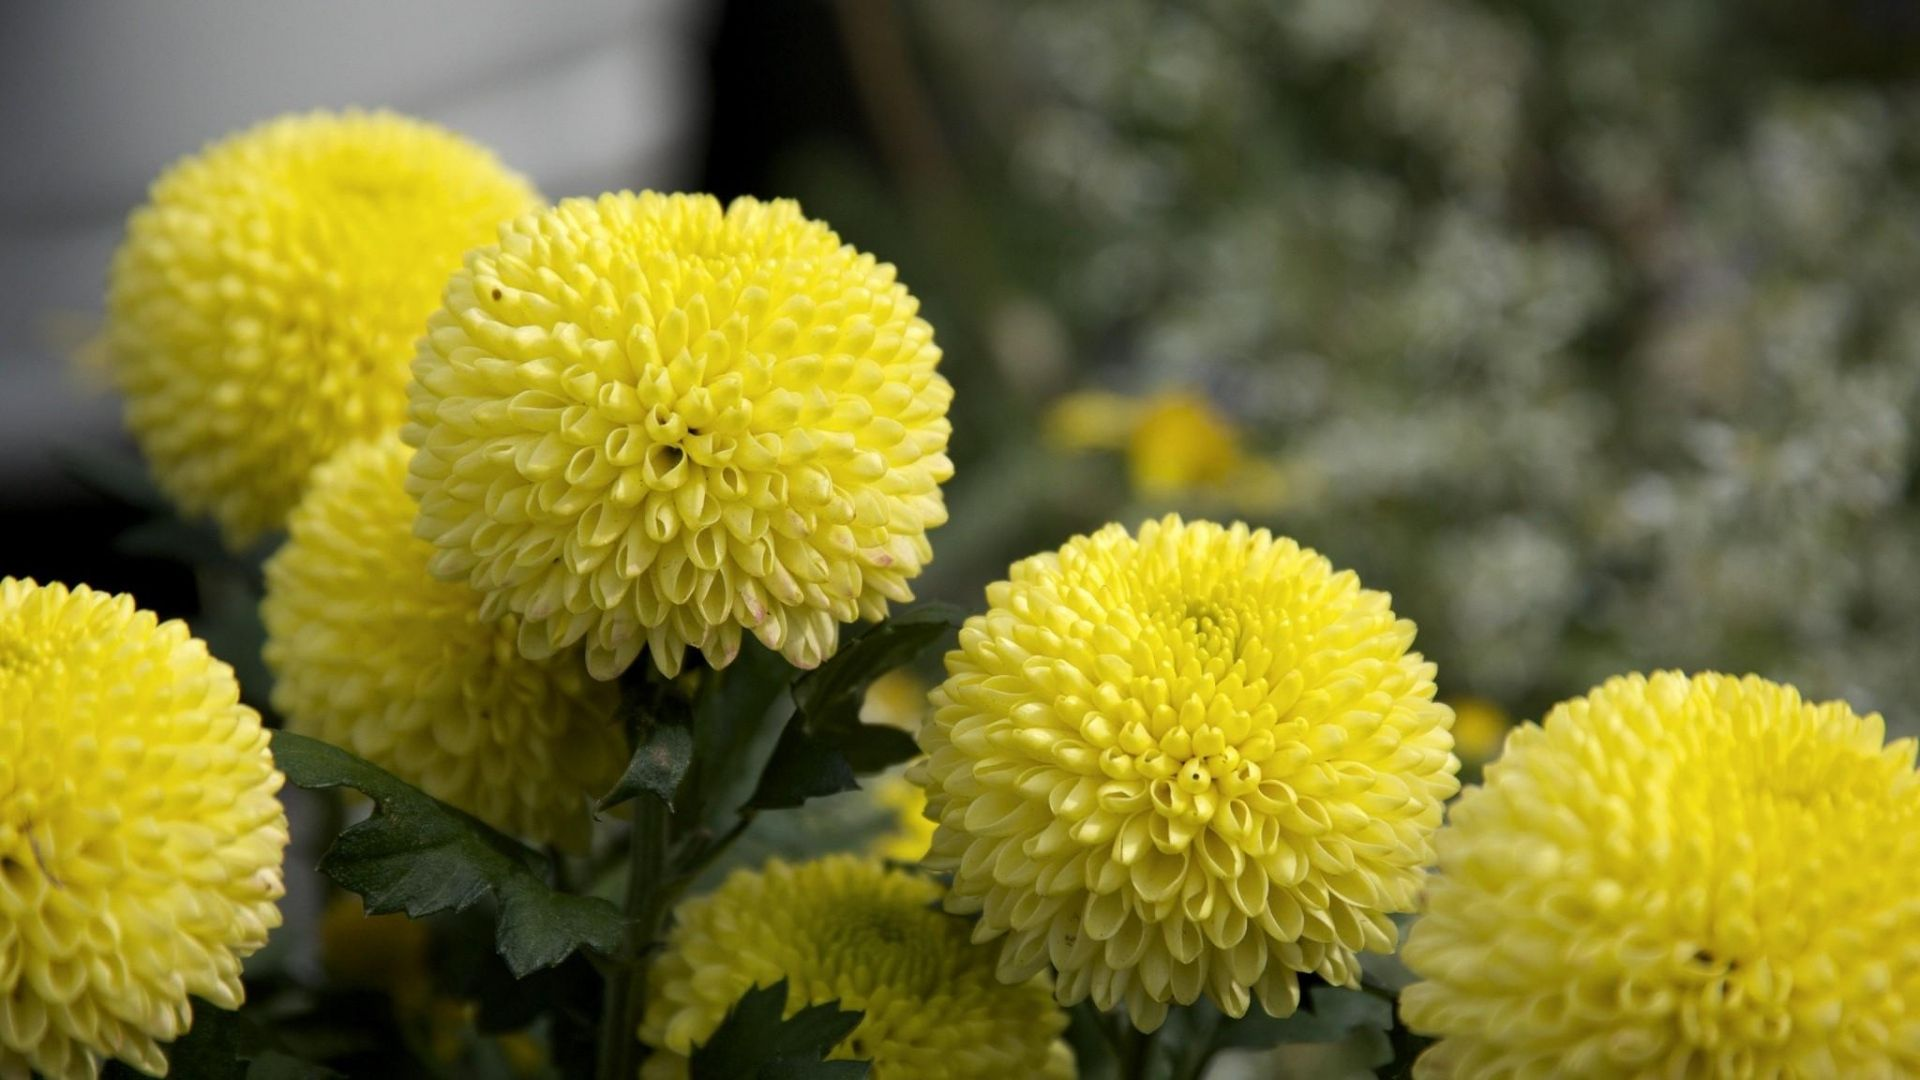 Stunning Dahlias Flowers Yellow Close Up Hd Images Pin Hd Wallpapers Dahlia Flower Flowers Beautiful Flowers